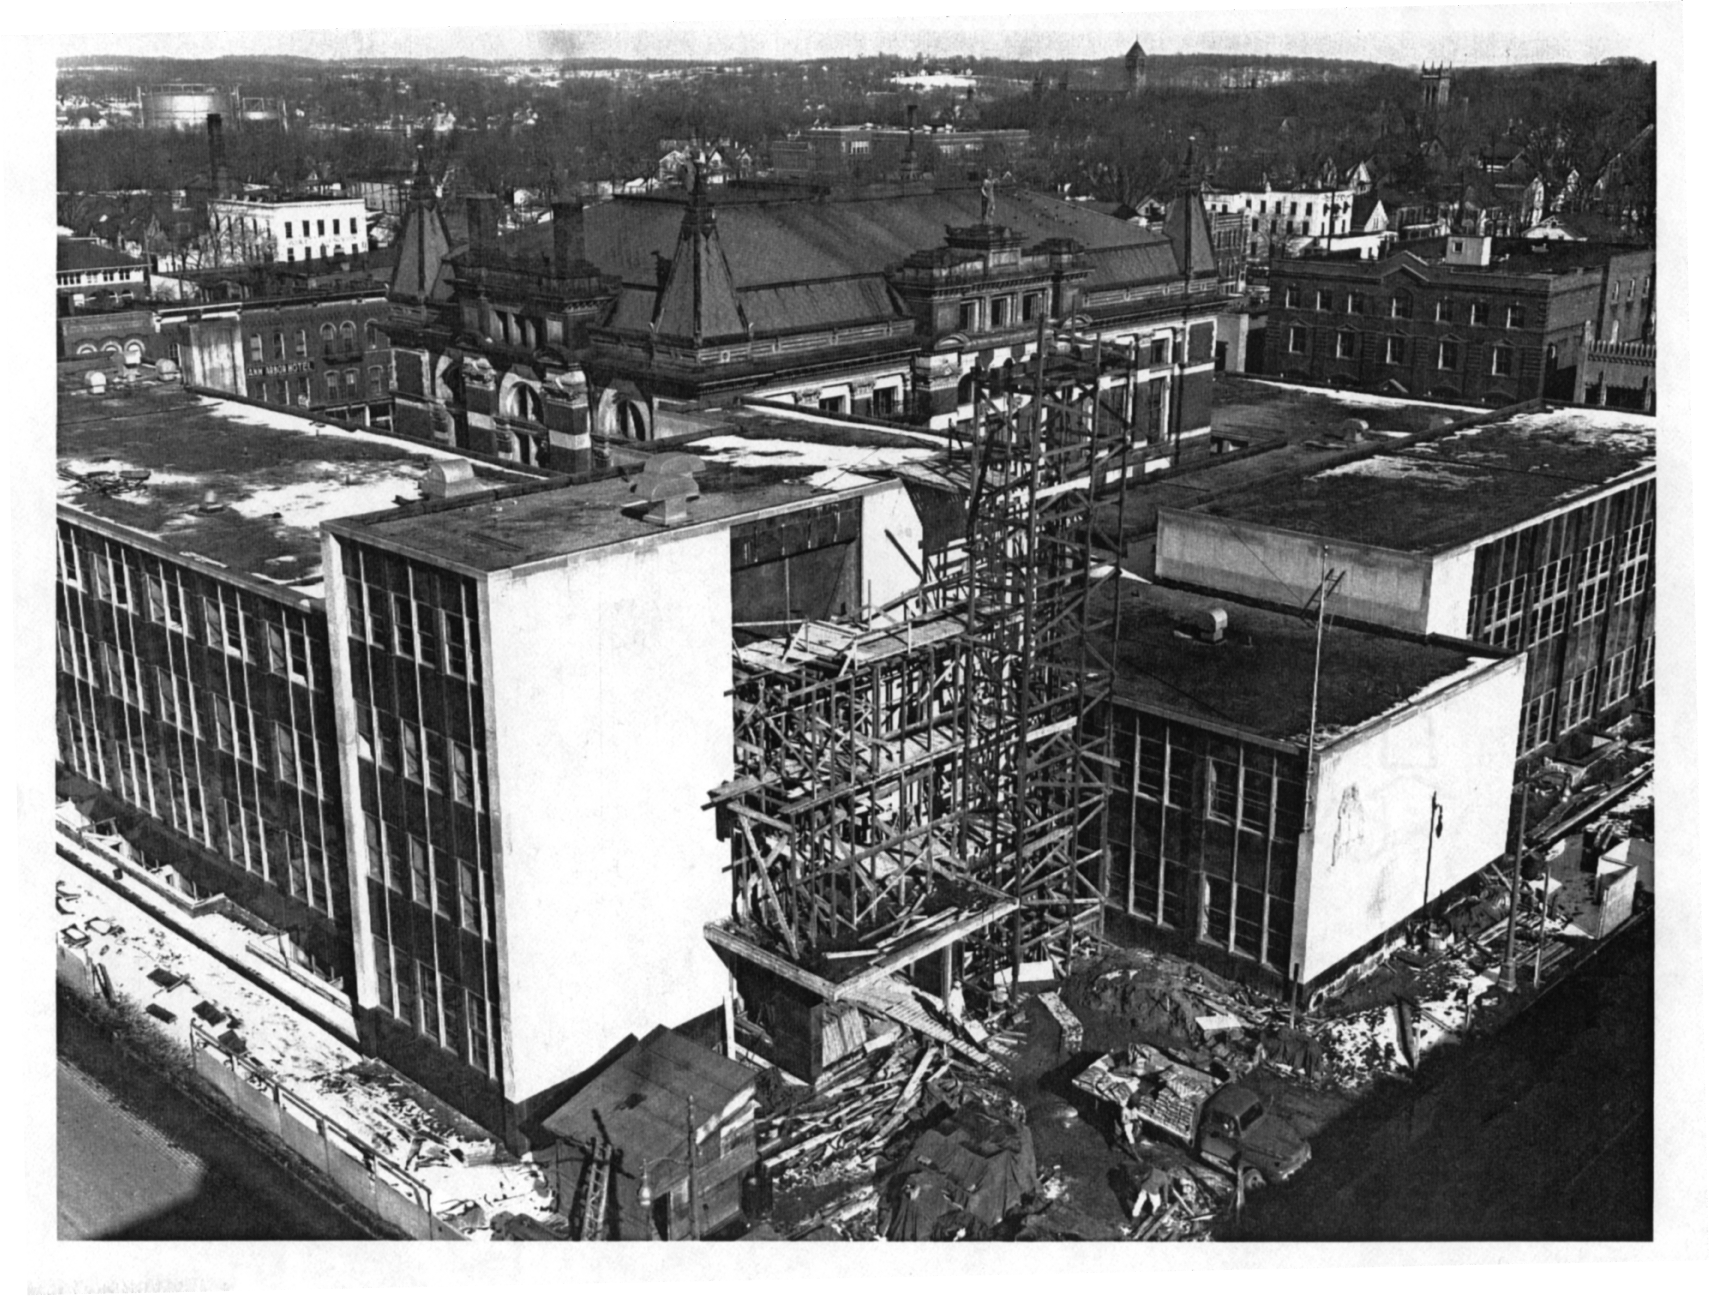 Construction of the present Courthouse image